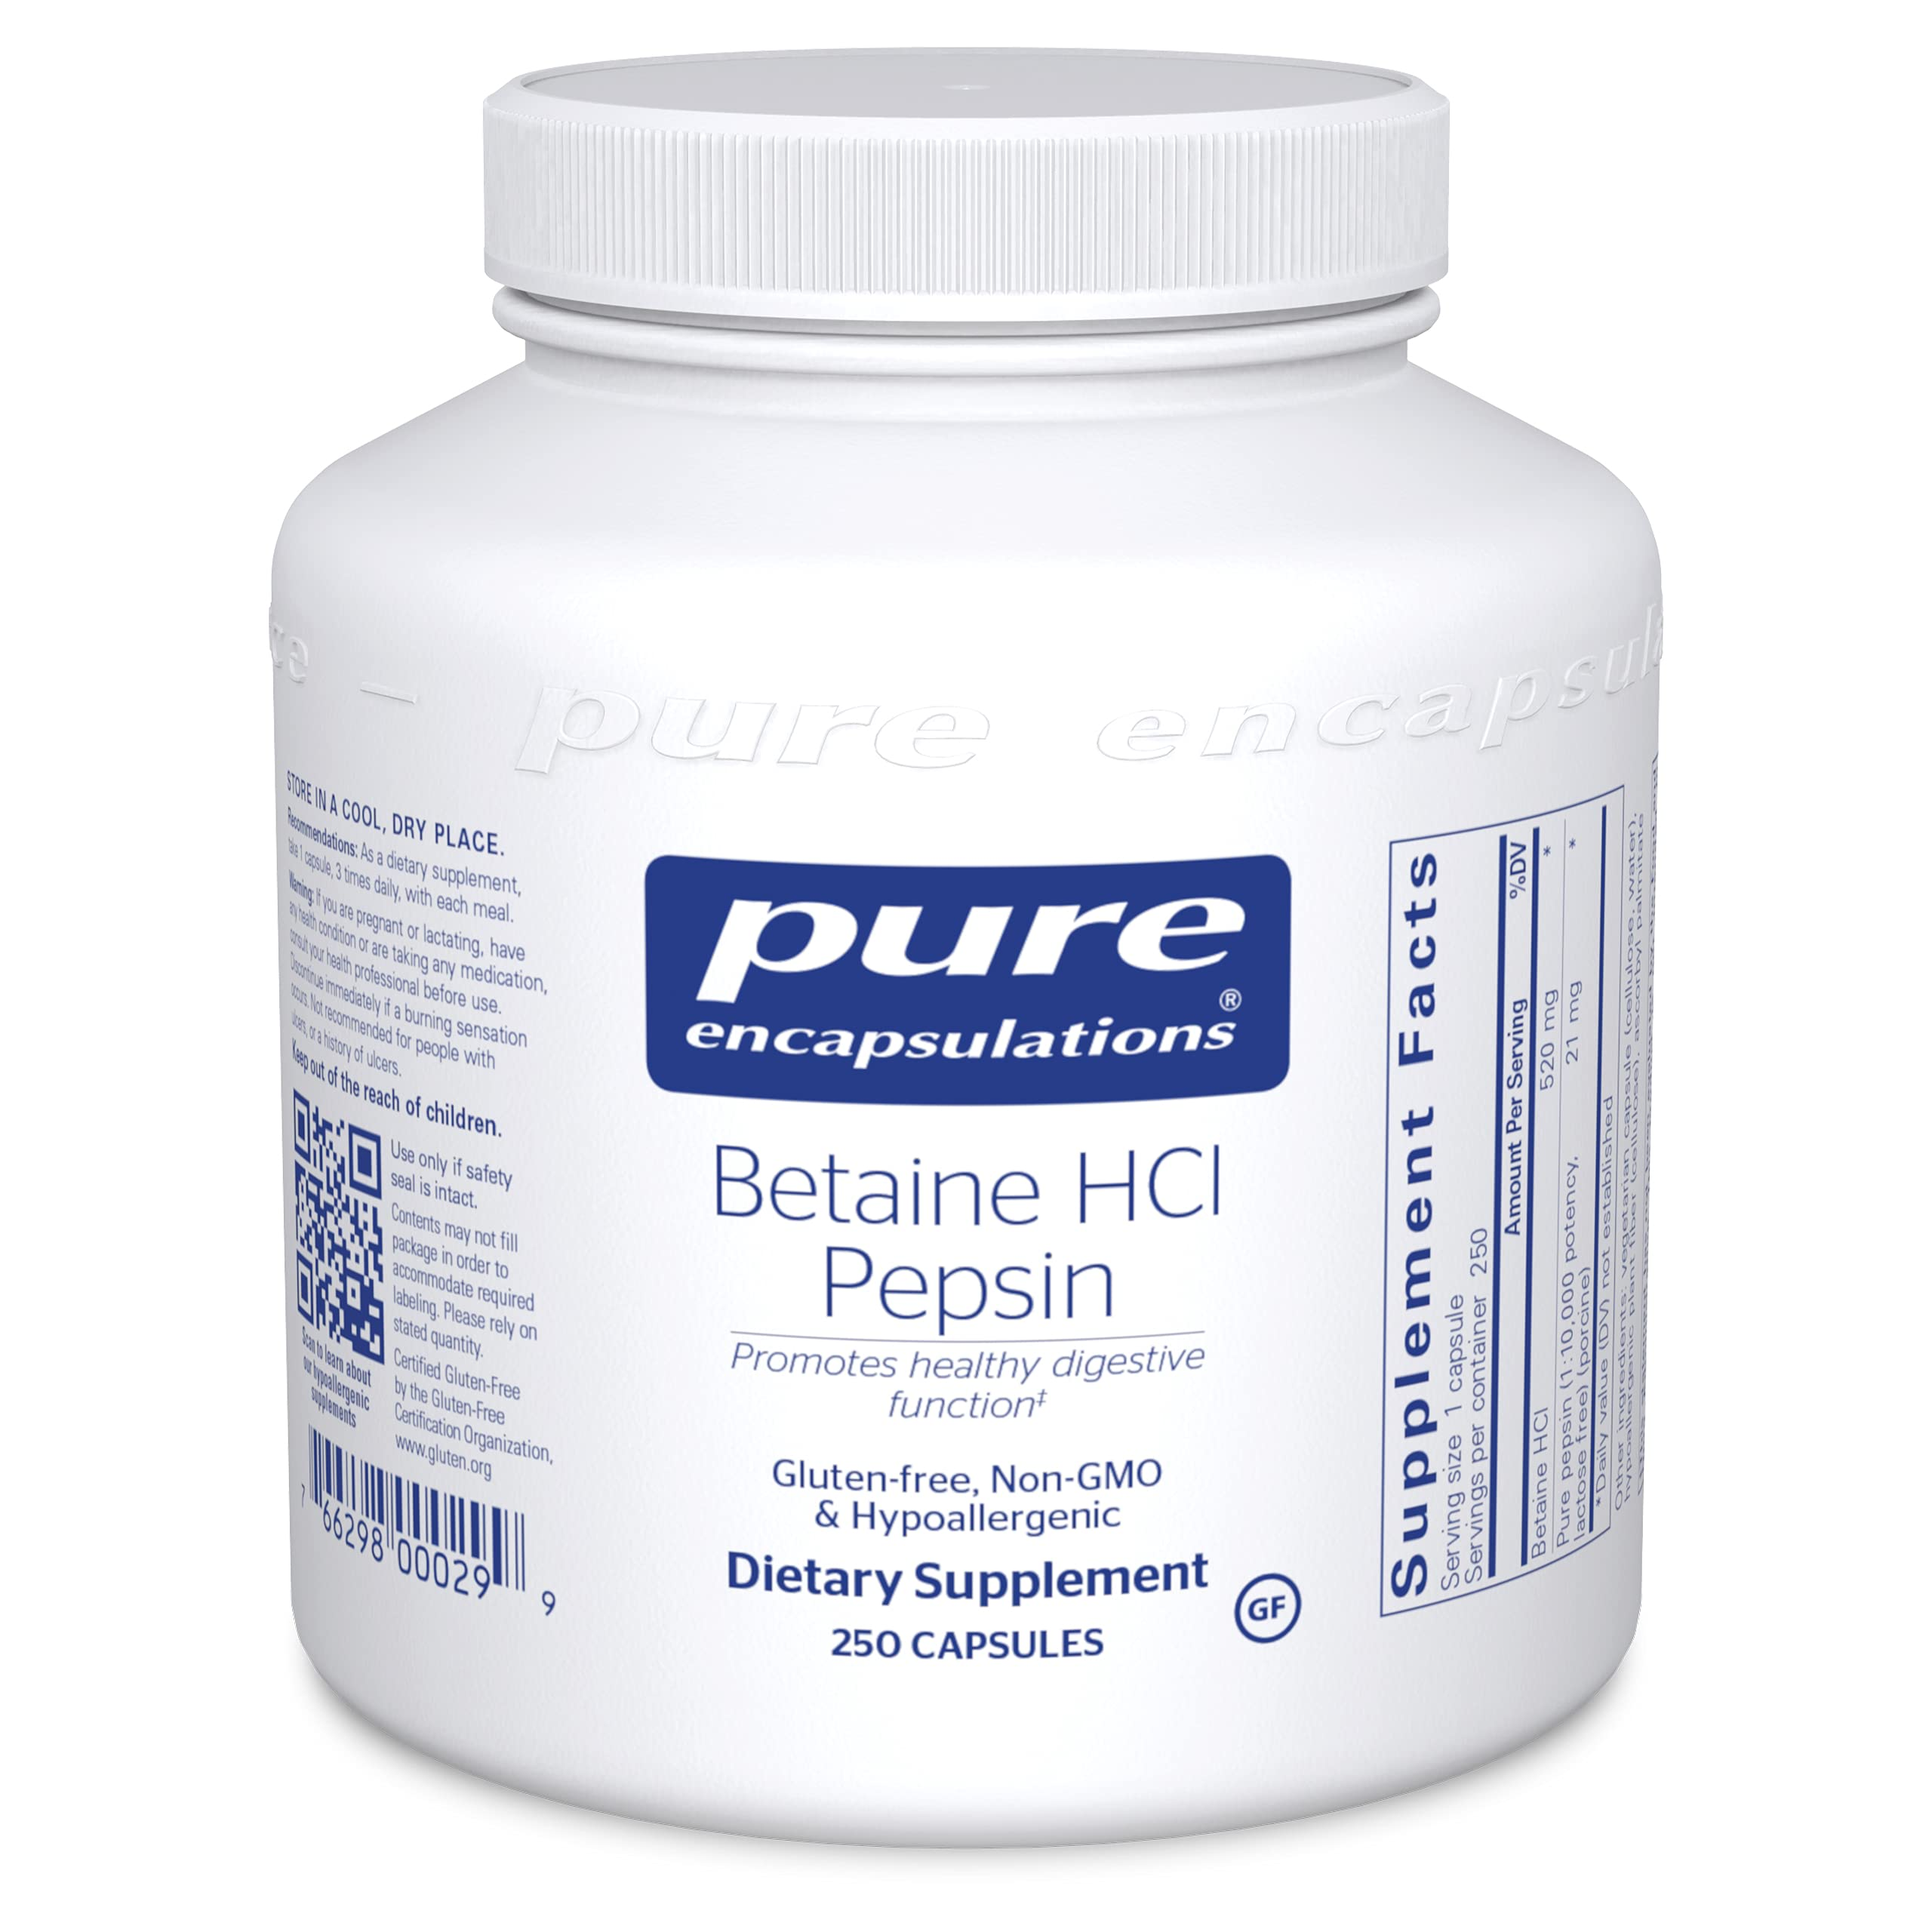 Pure Encapsulations Betaine HCl Pepsin   Digestive Enzyme Supplement for Digestive Aid and Support, Stomach Acid, and Nutrient Absorption*   250 Capsules